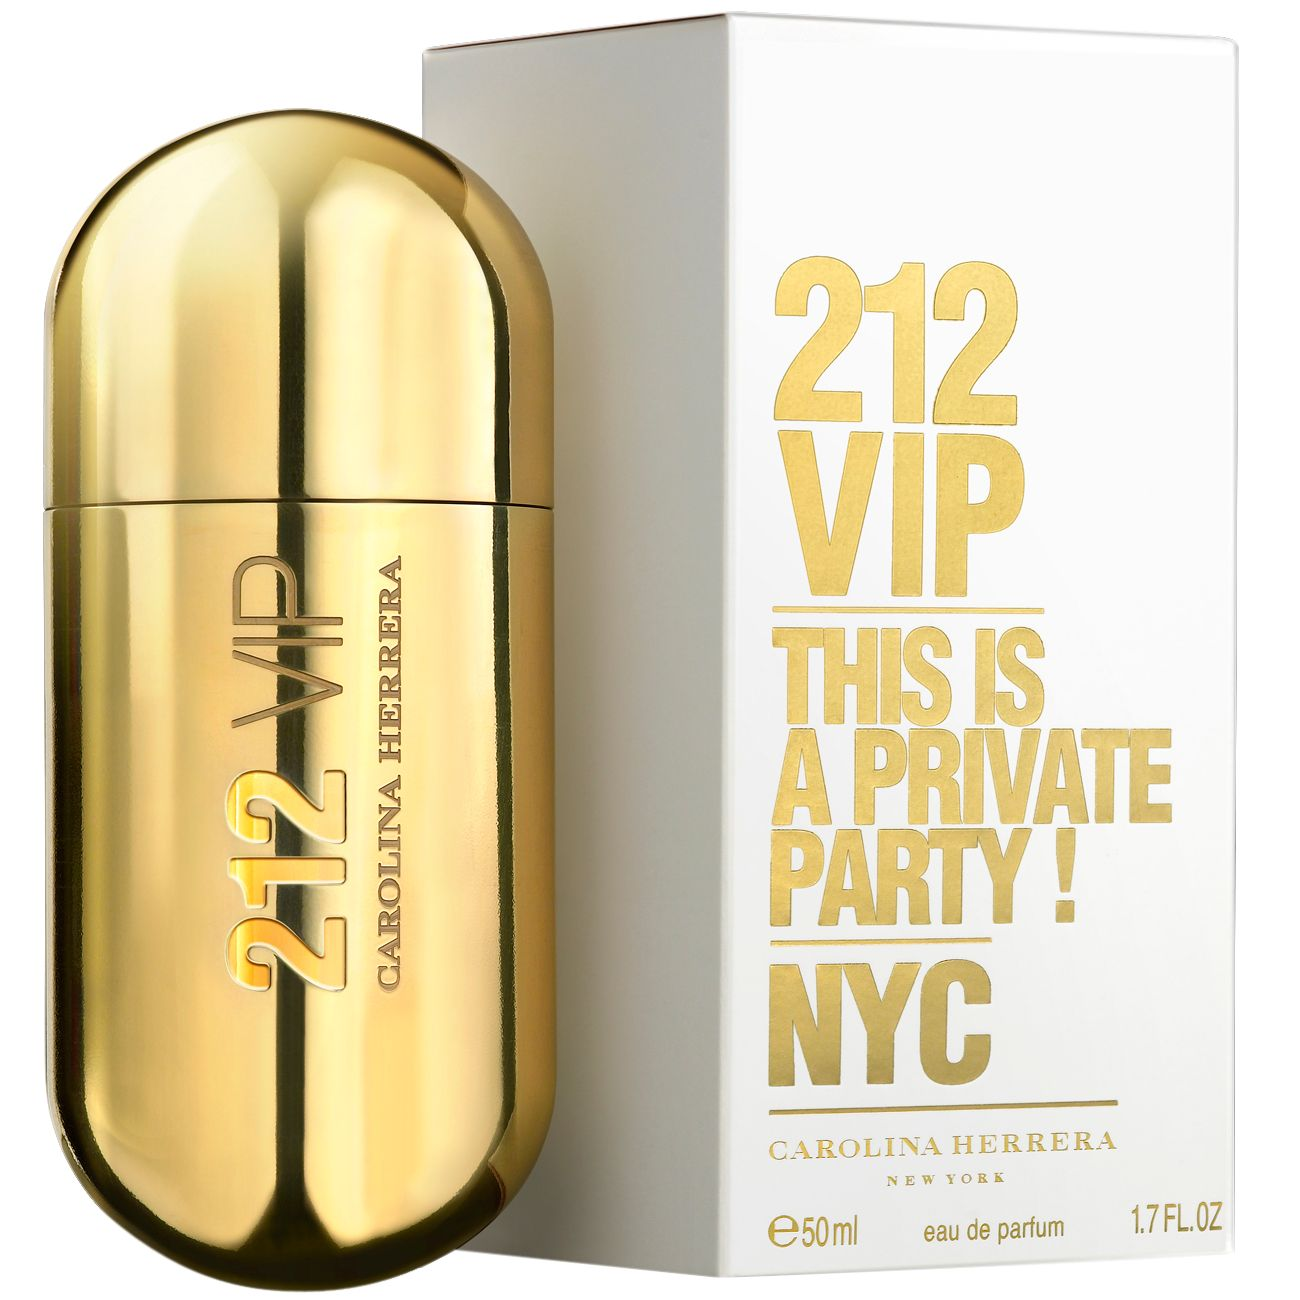 212 vip men's aftershave boots